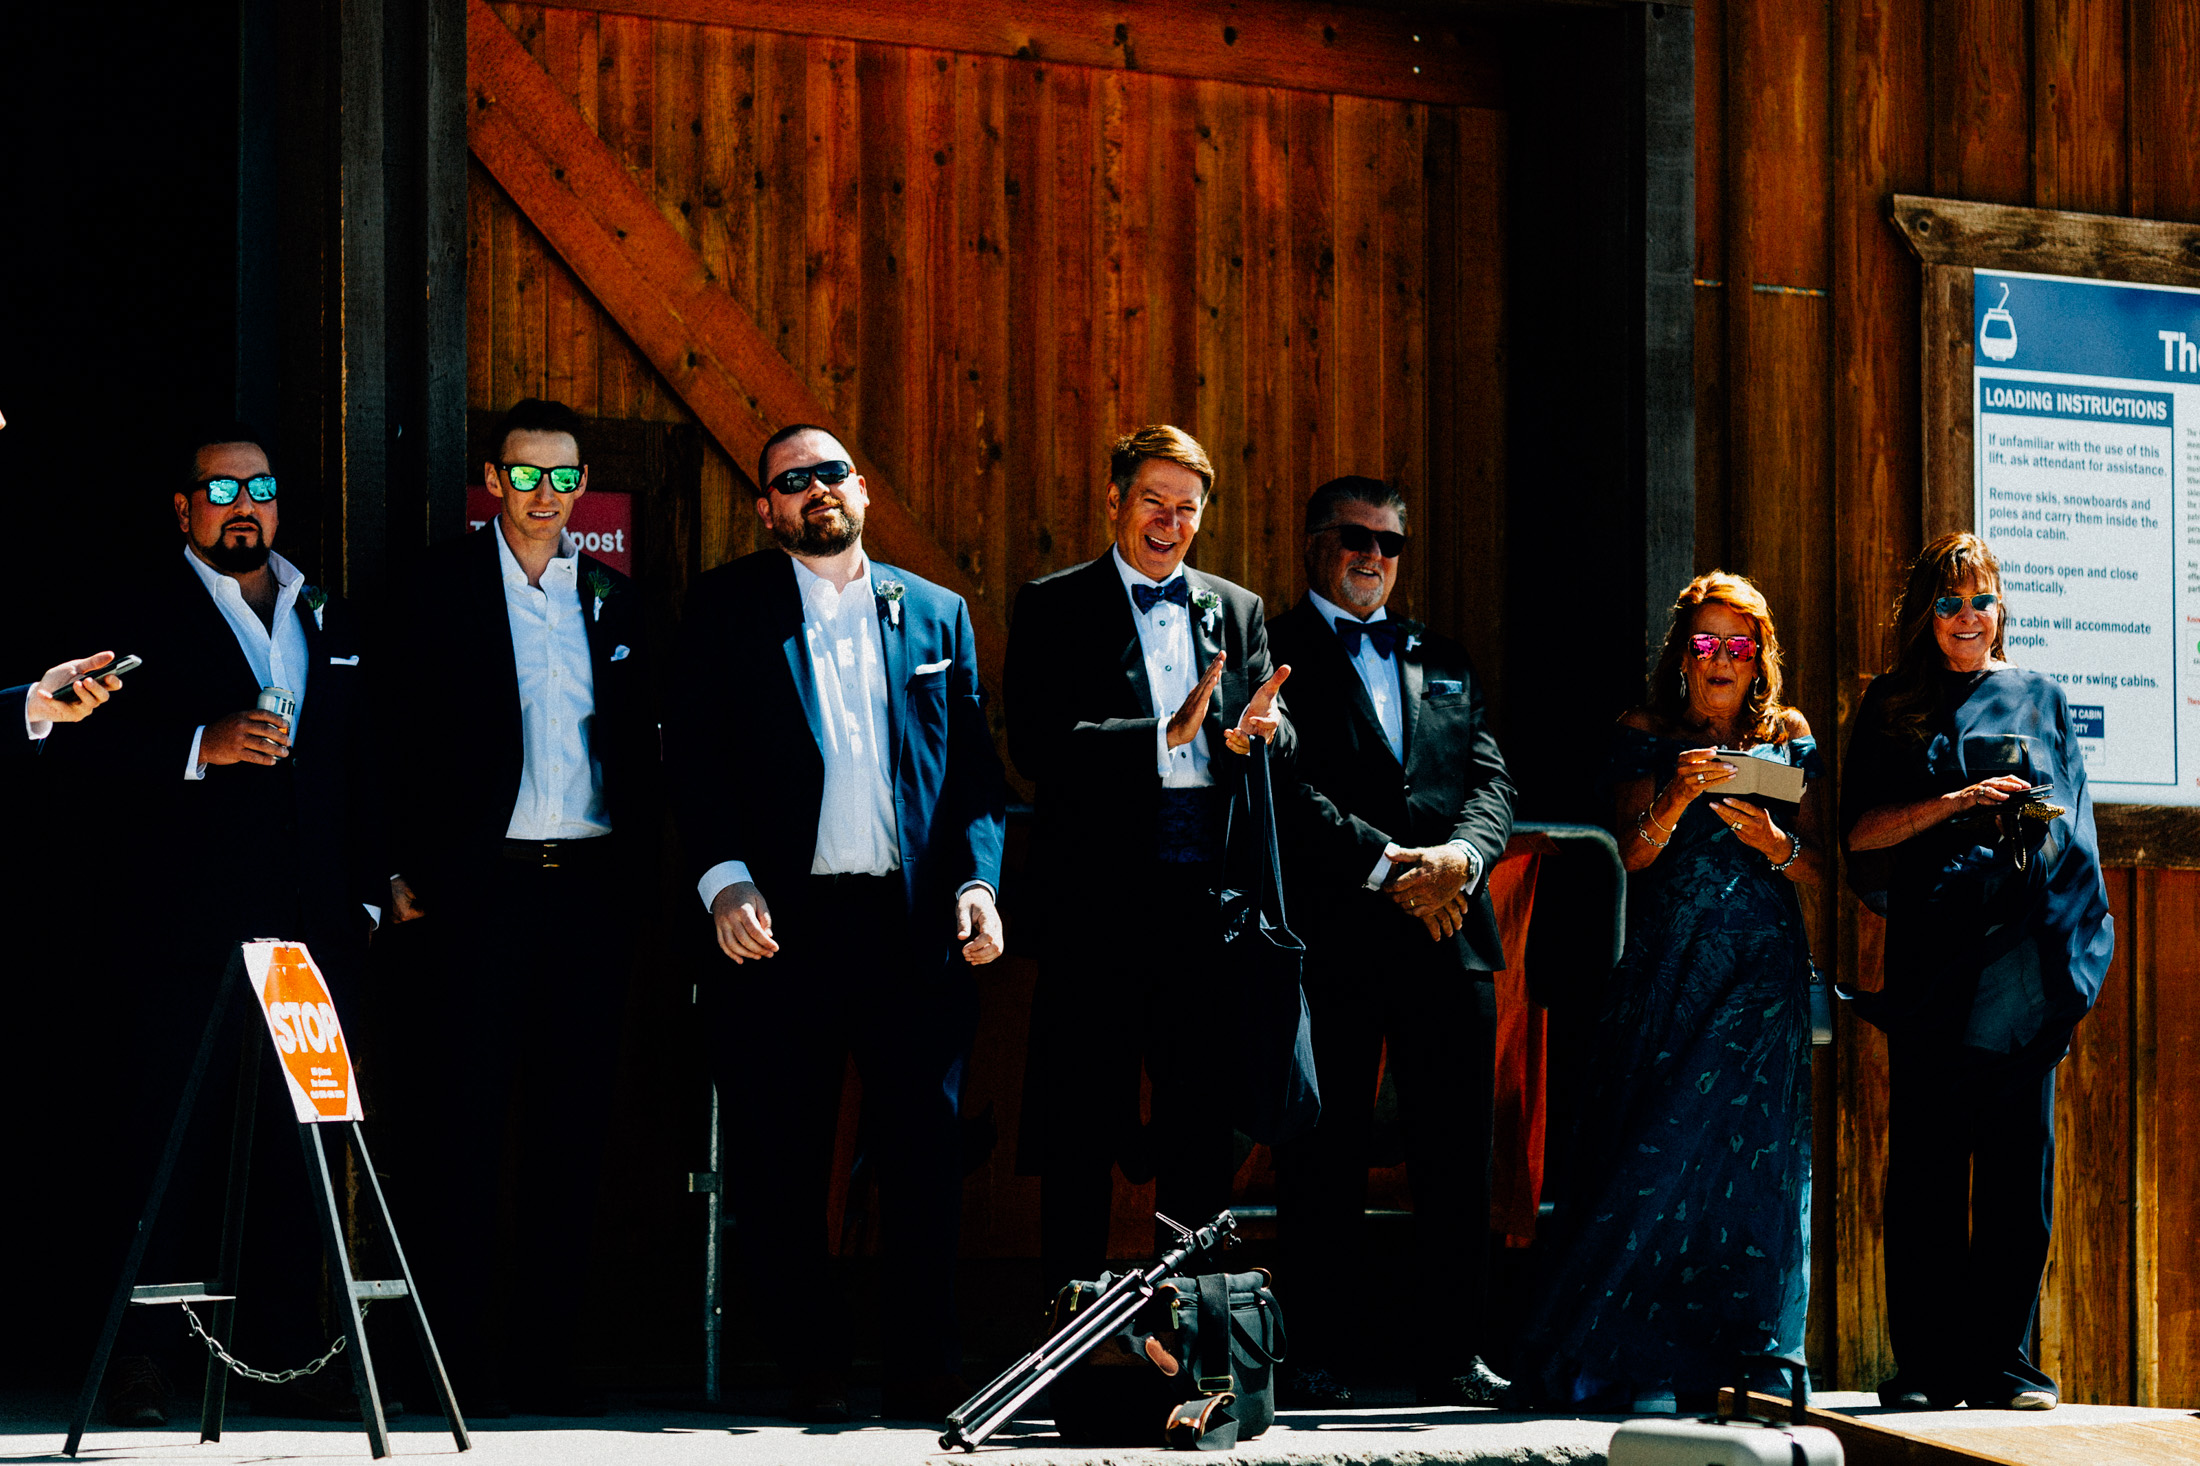 Wedding party at the top of Keystone Resort watches as bride and groom see each other.